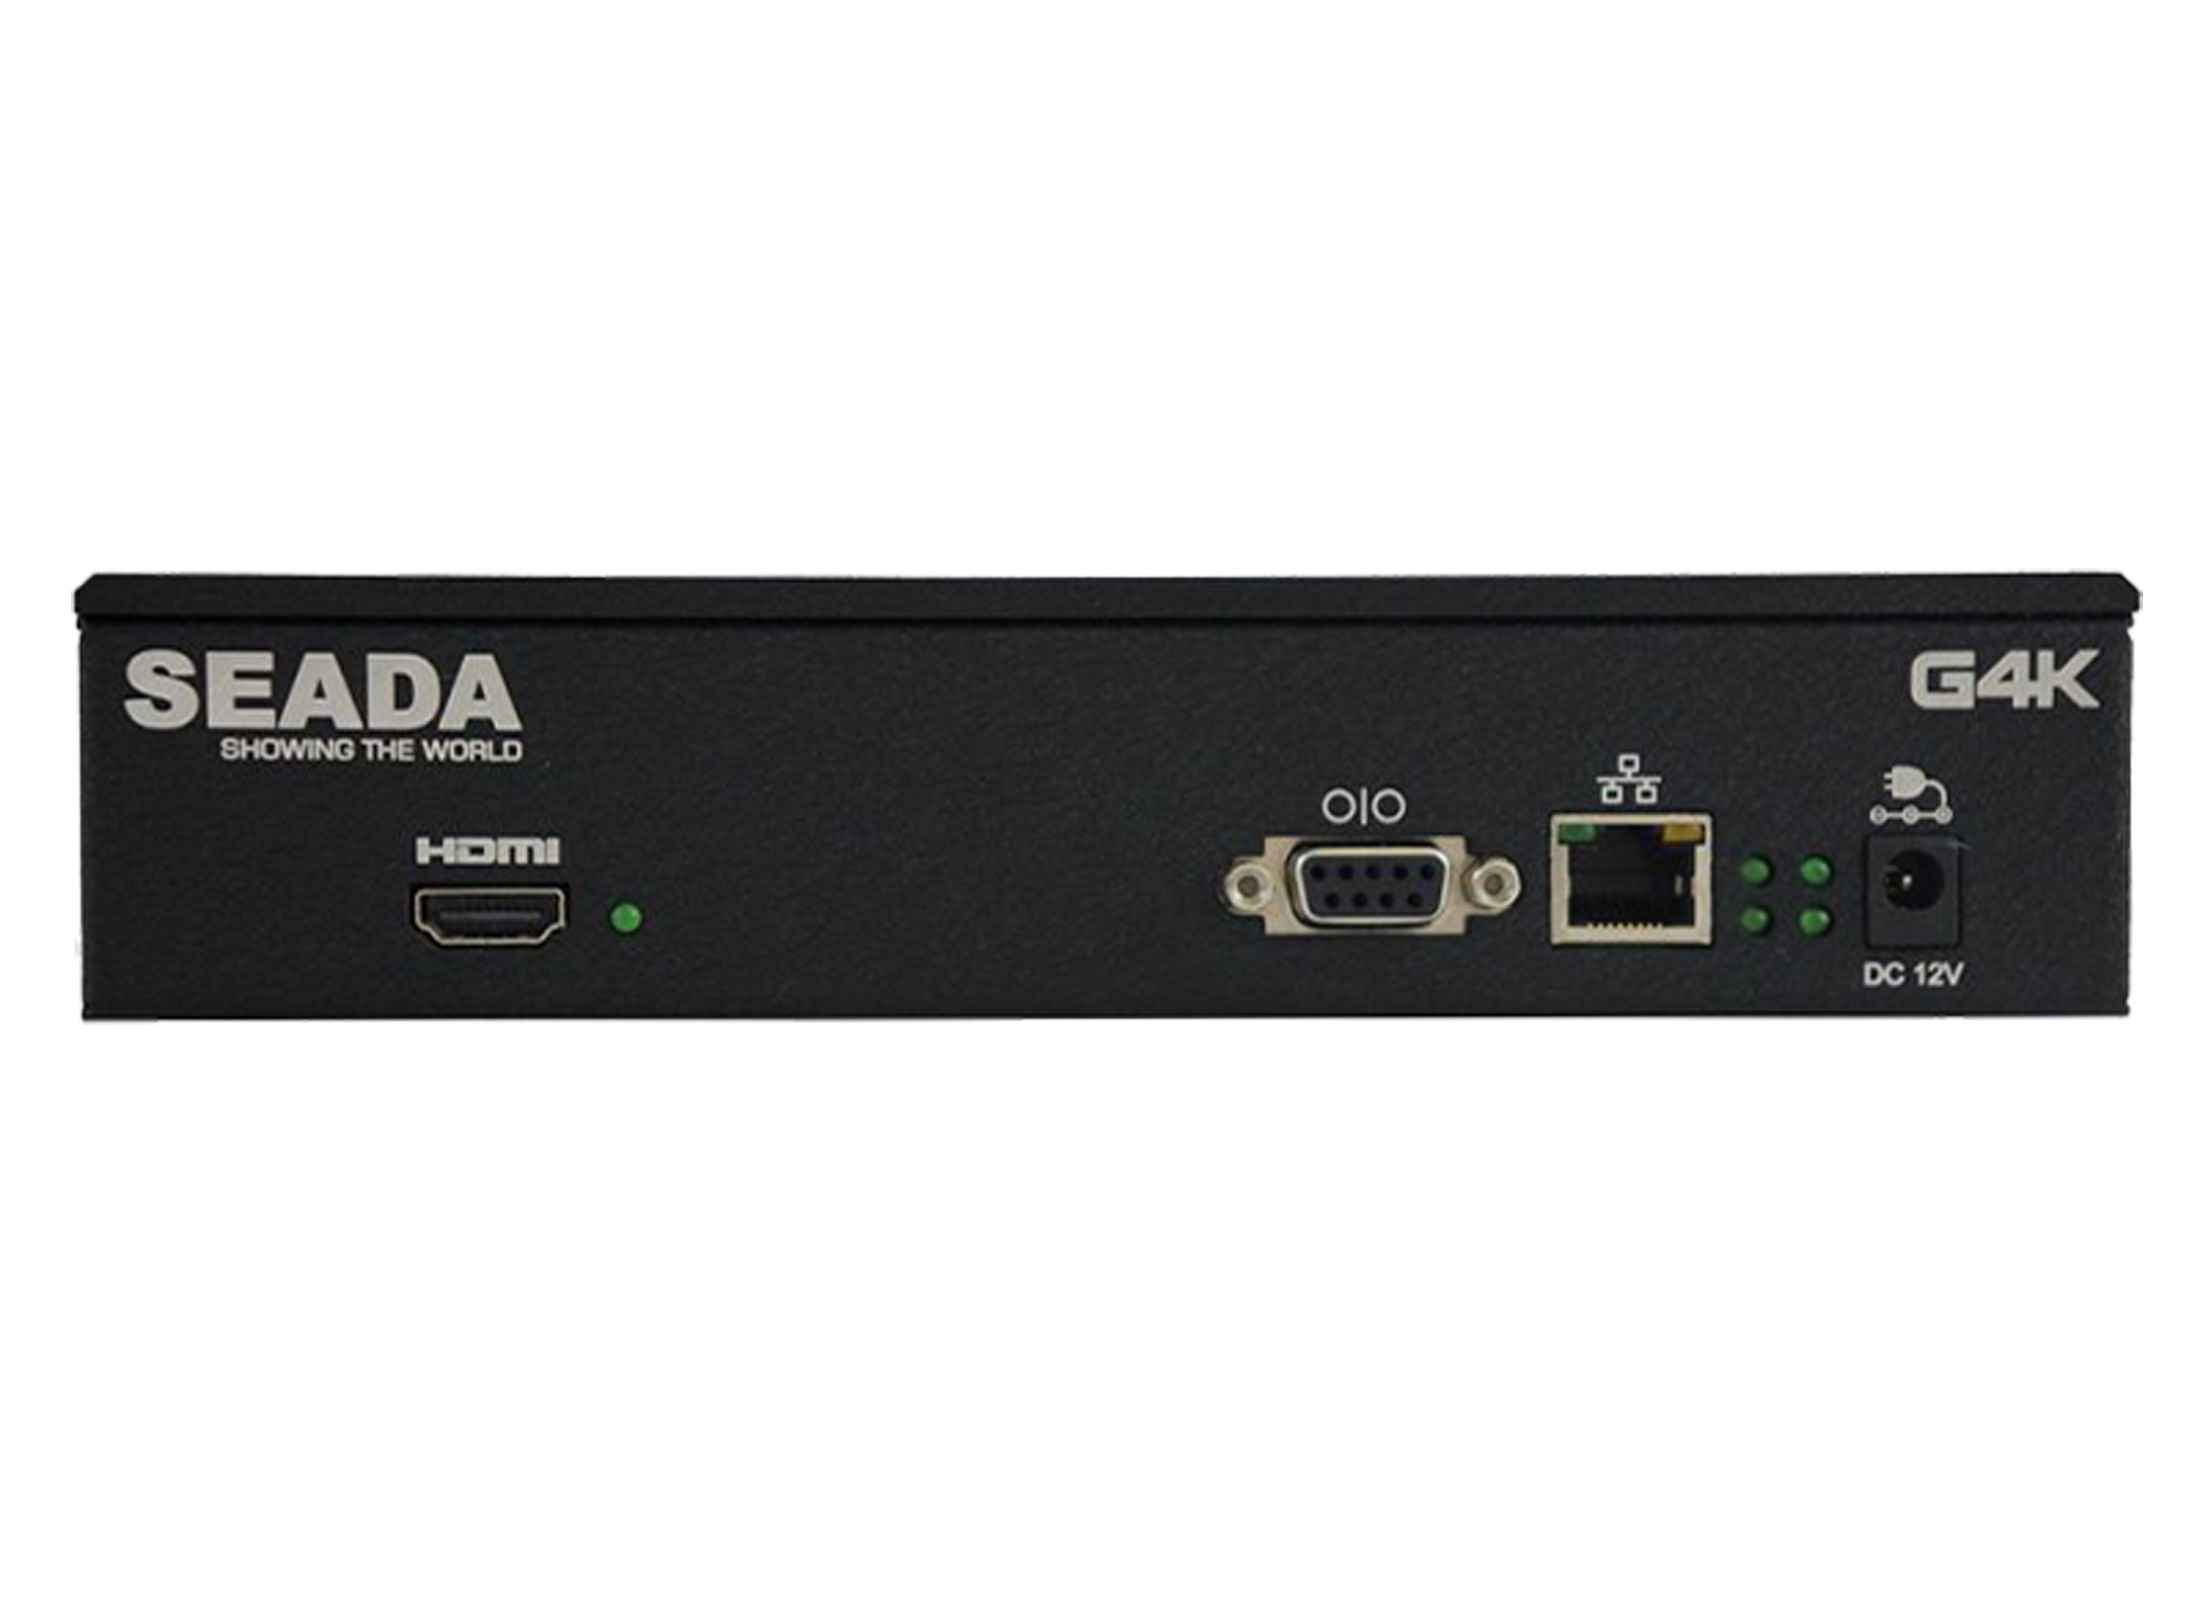 SEADA G4K HDMI 4K 1.4 Video Wall Controller Online At Low Prices At ...